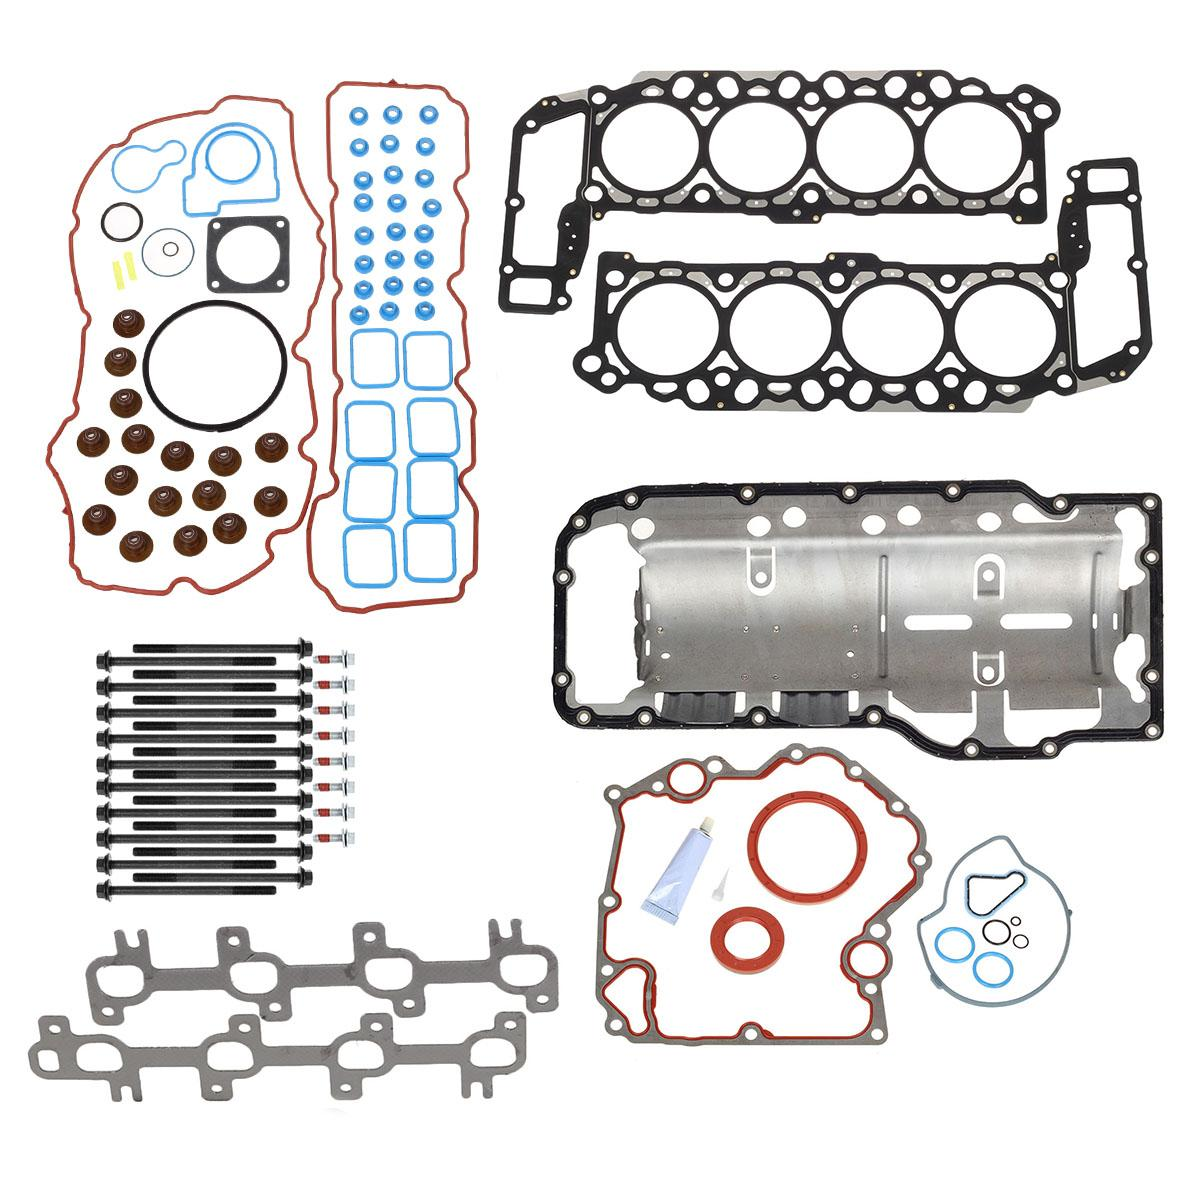 Full Gaskets Set Fits 99-03 Jeep Grand Cherokee Dodge